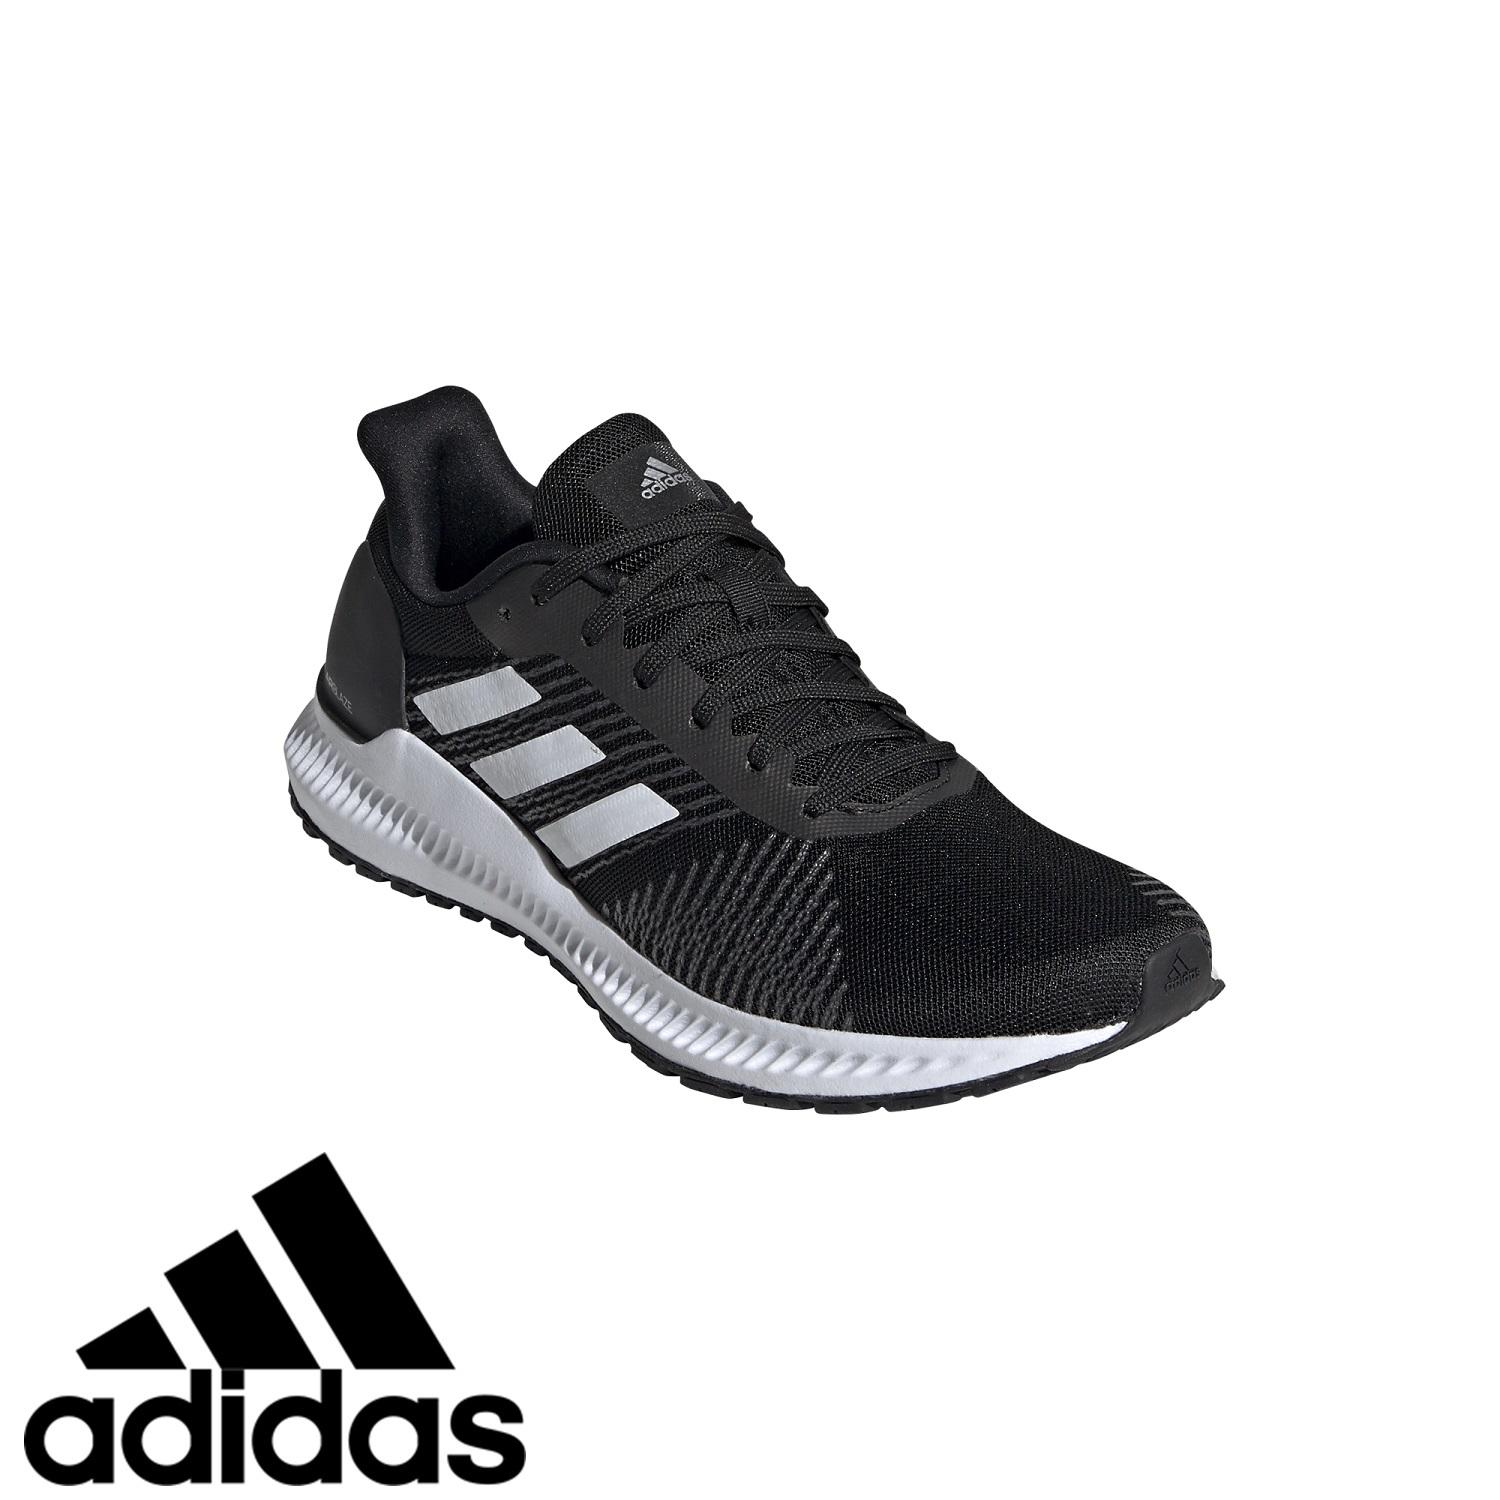 9437e42b2 Running Shoes for Women for sale - Womens Running Shoes online ...